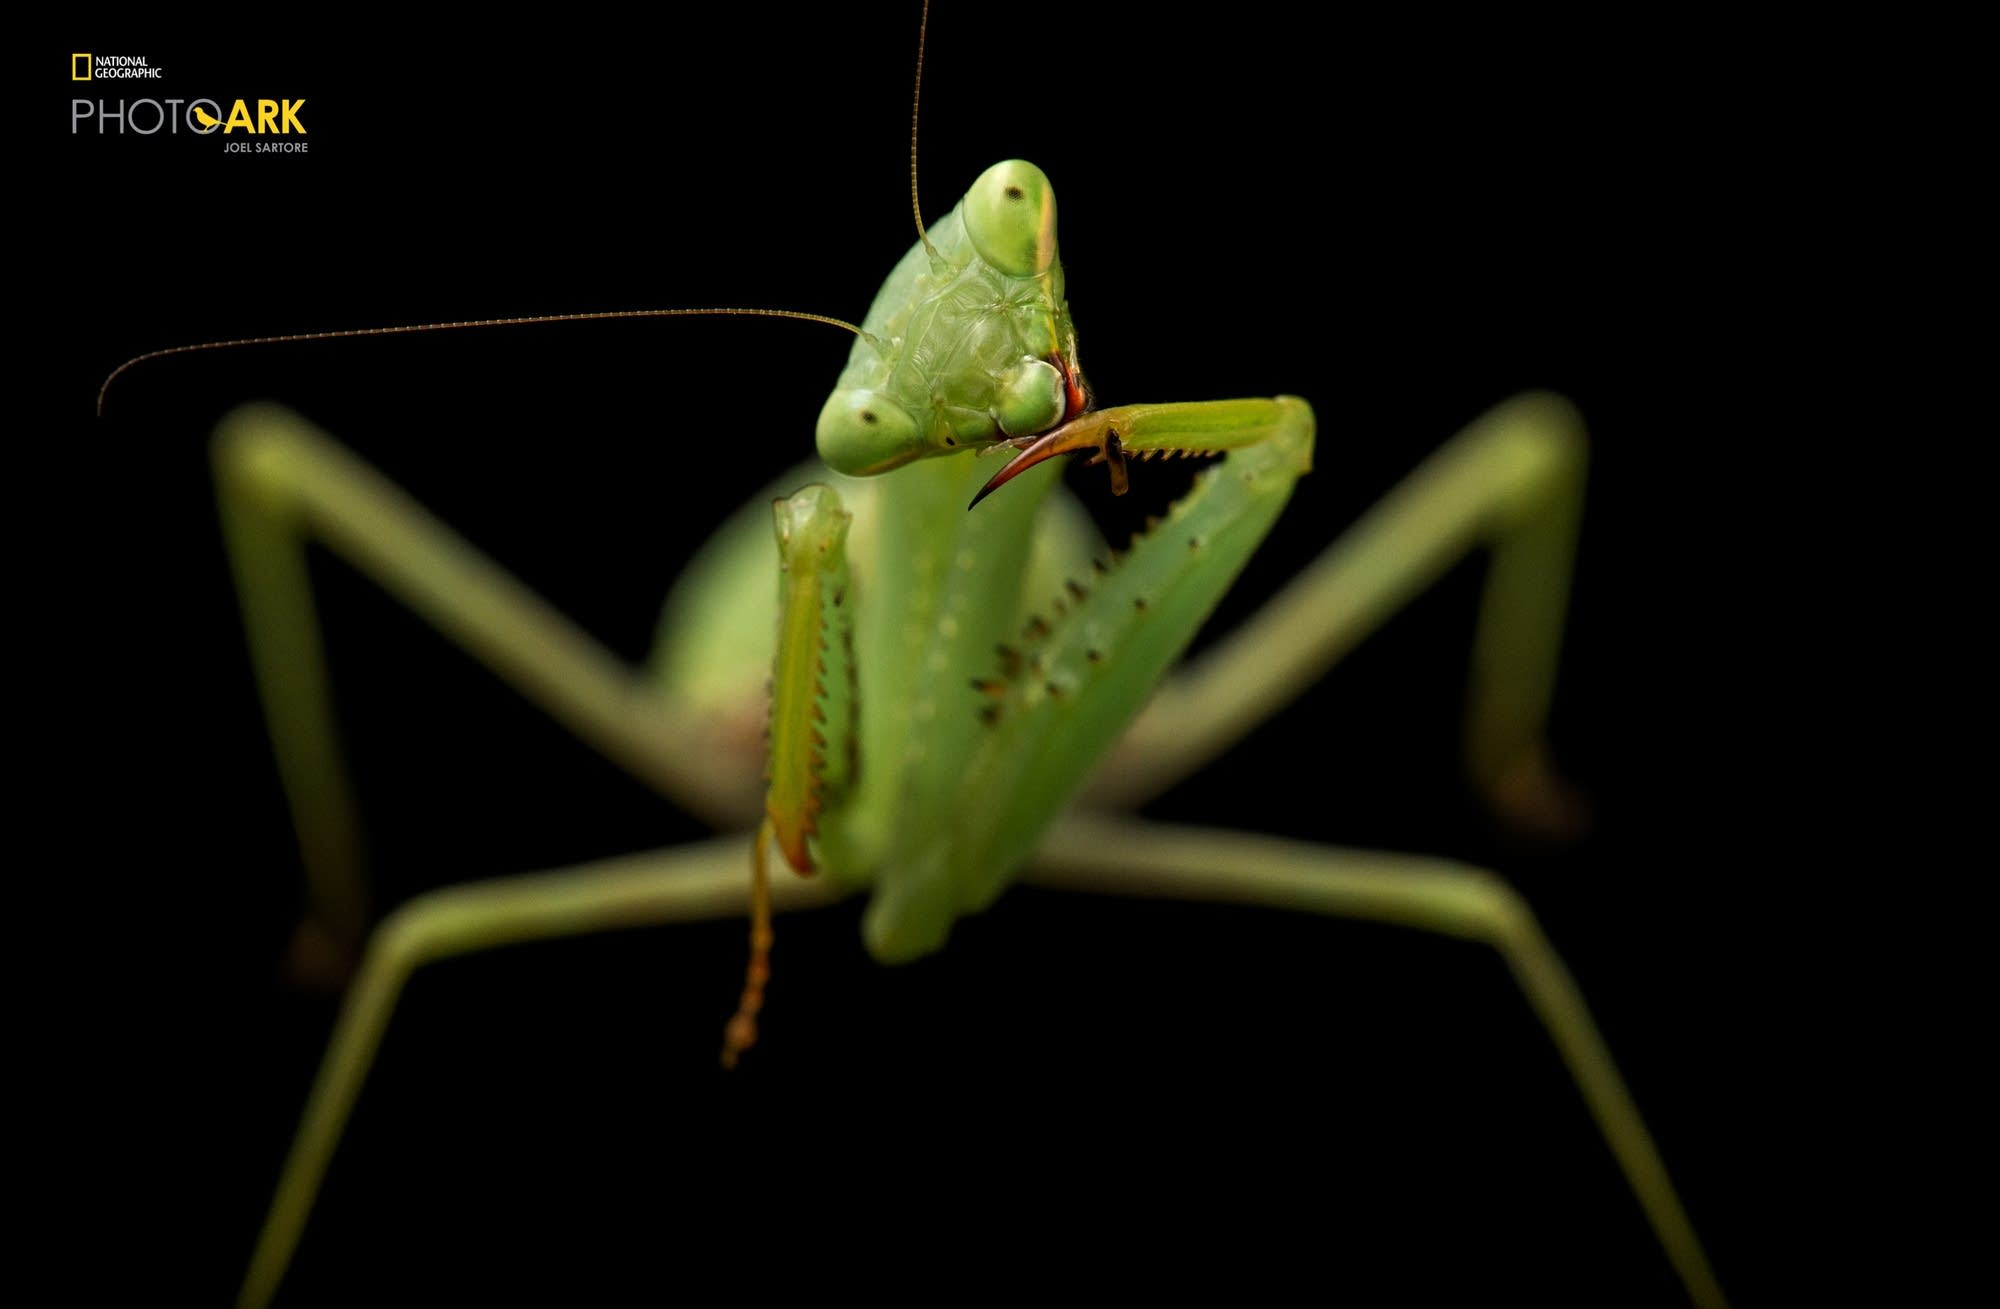 A springbok mantis (Miomantis caffra) at the Auckland Zoo.